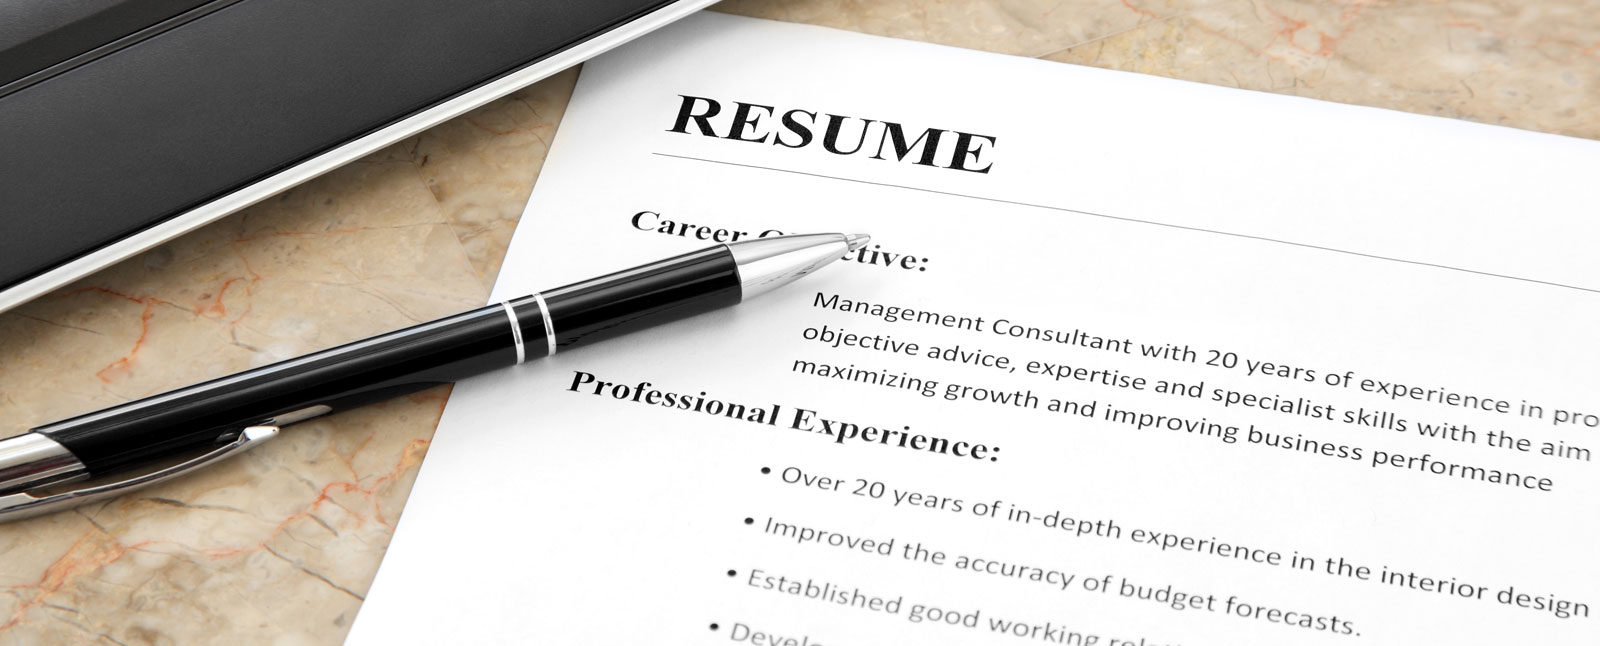 resume writing services erie pa Free argumentative essay professional resume services online erie pa master thesis online essay writing civil services.